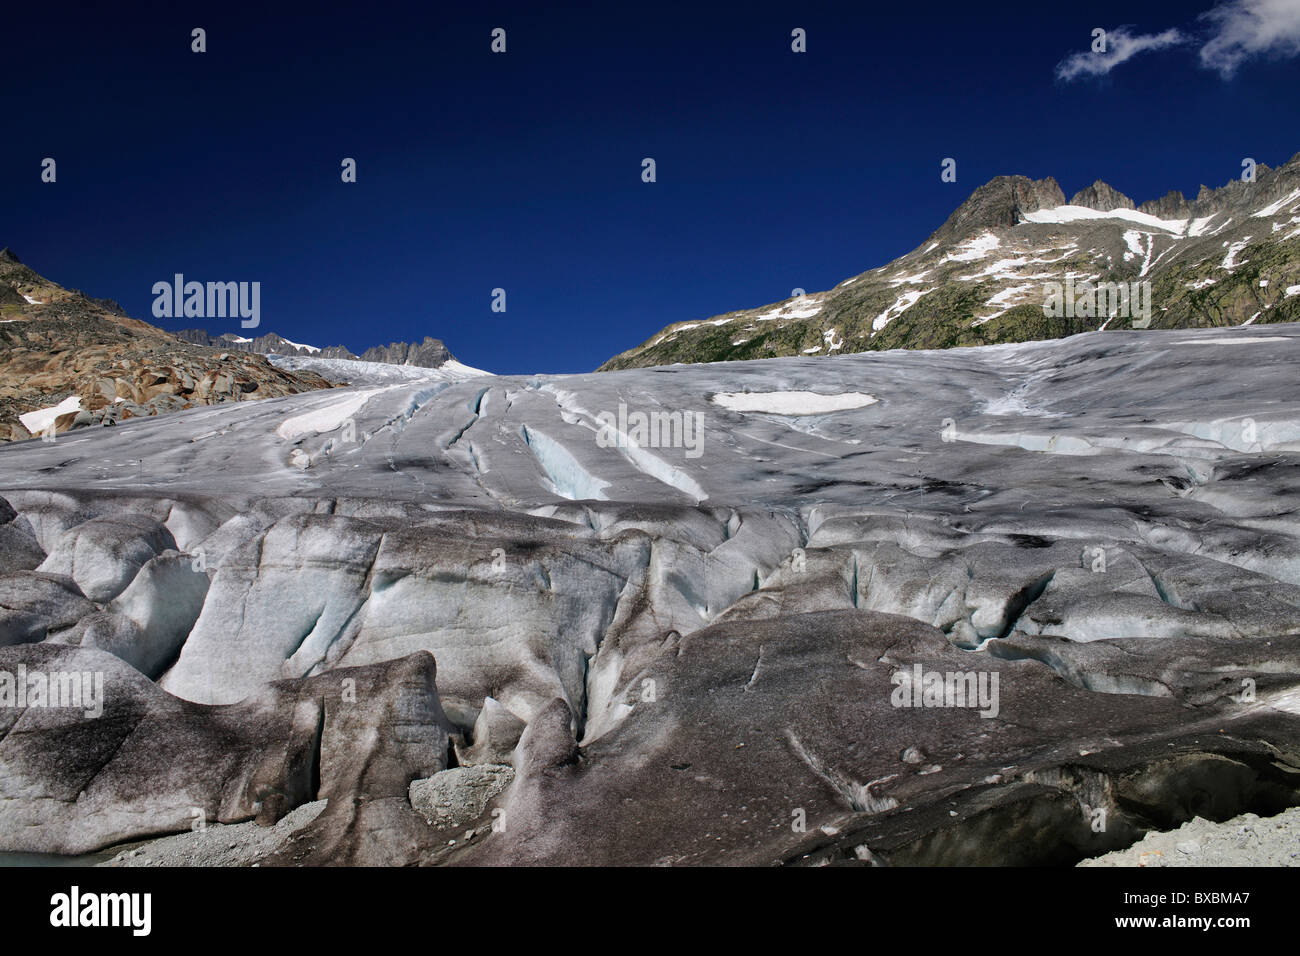 Rhone Glacier, Canton of Valais, Switzerland, Europe - Stock Image